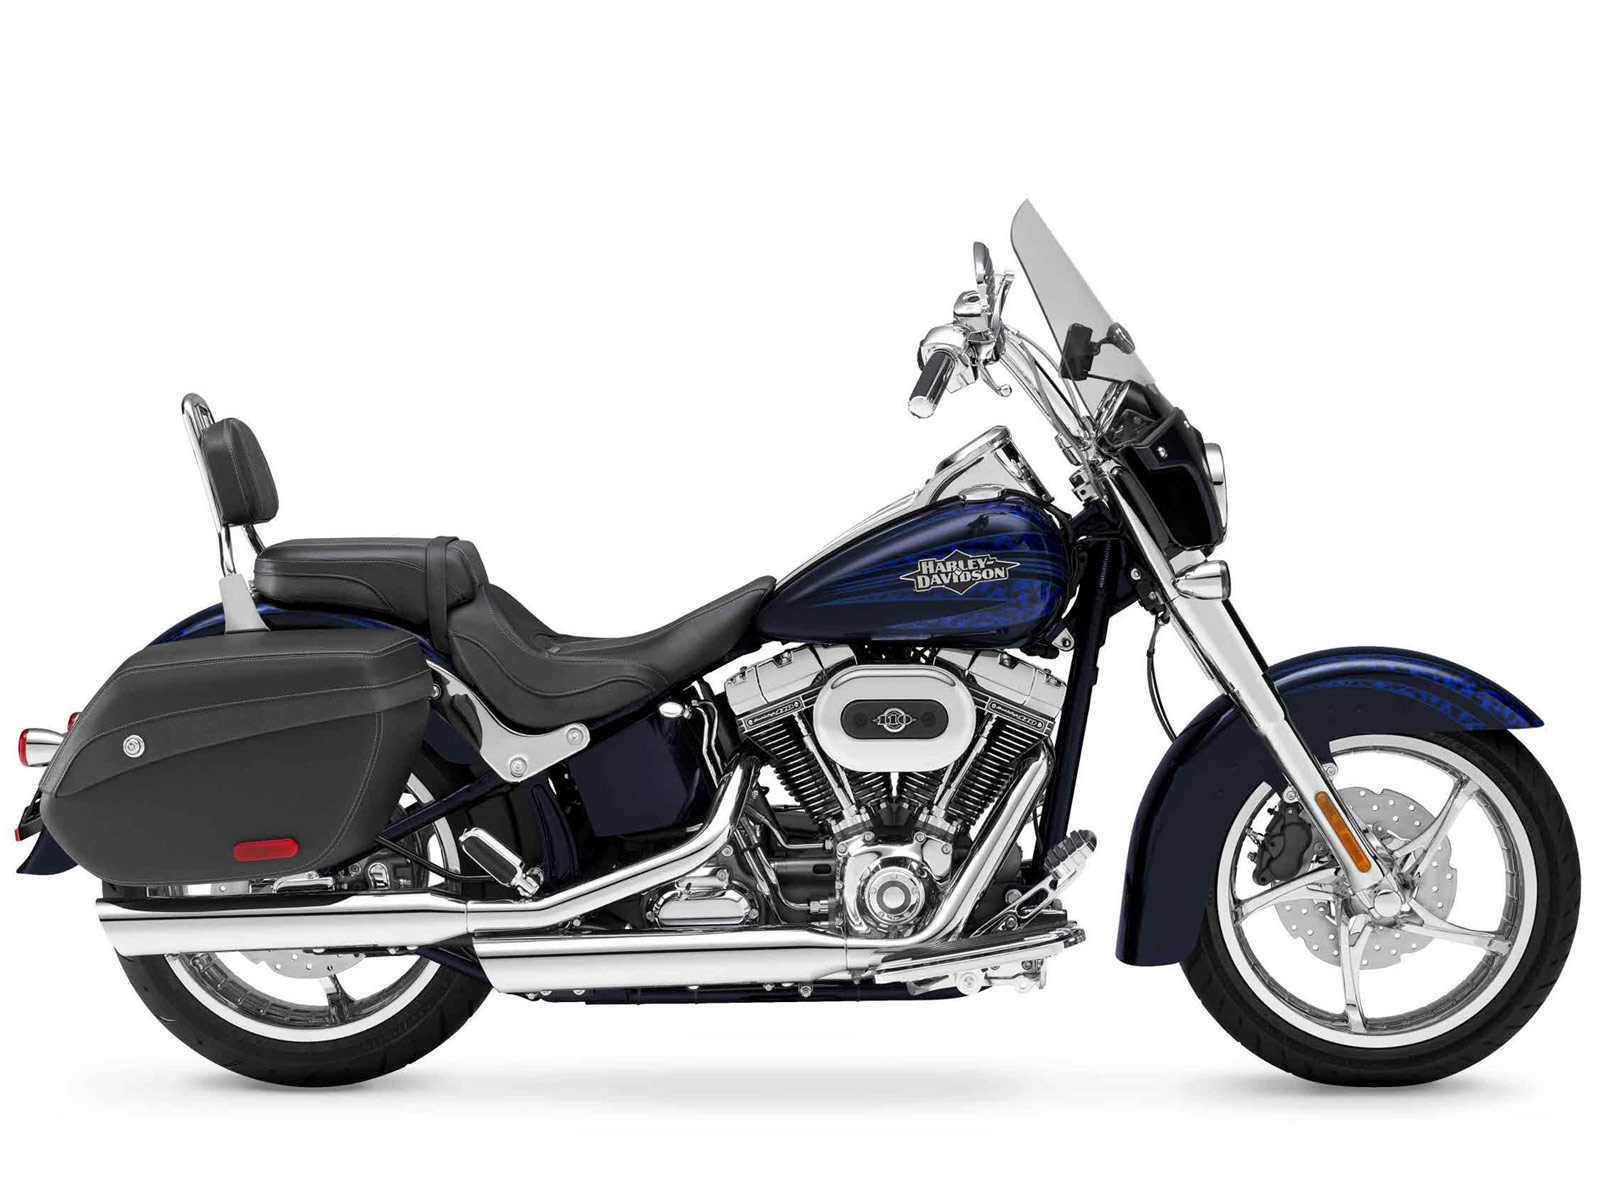 2012 harley davidson flstse3 cvo softail convertible. Black Bedroom Furniture Sets. Home Design Ideas